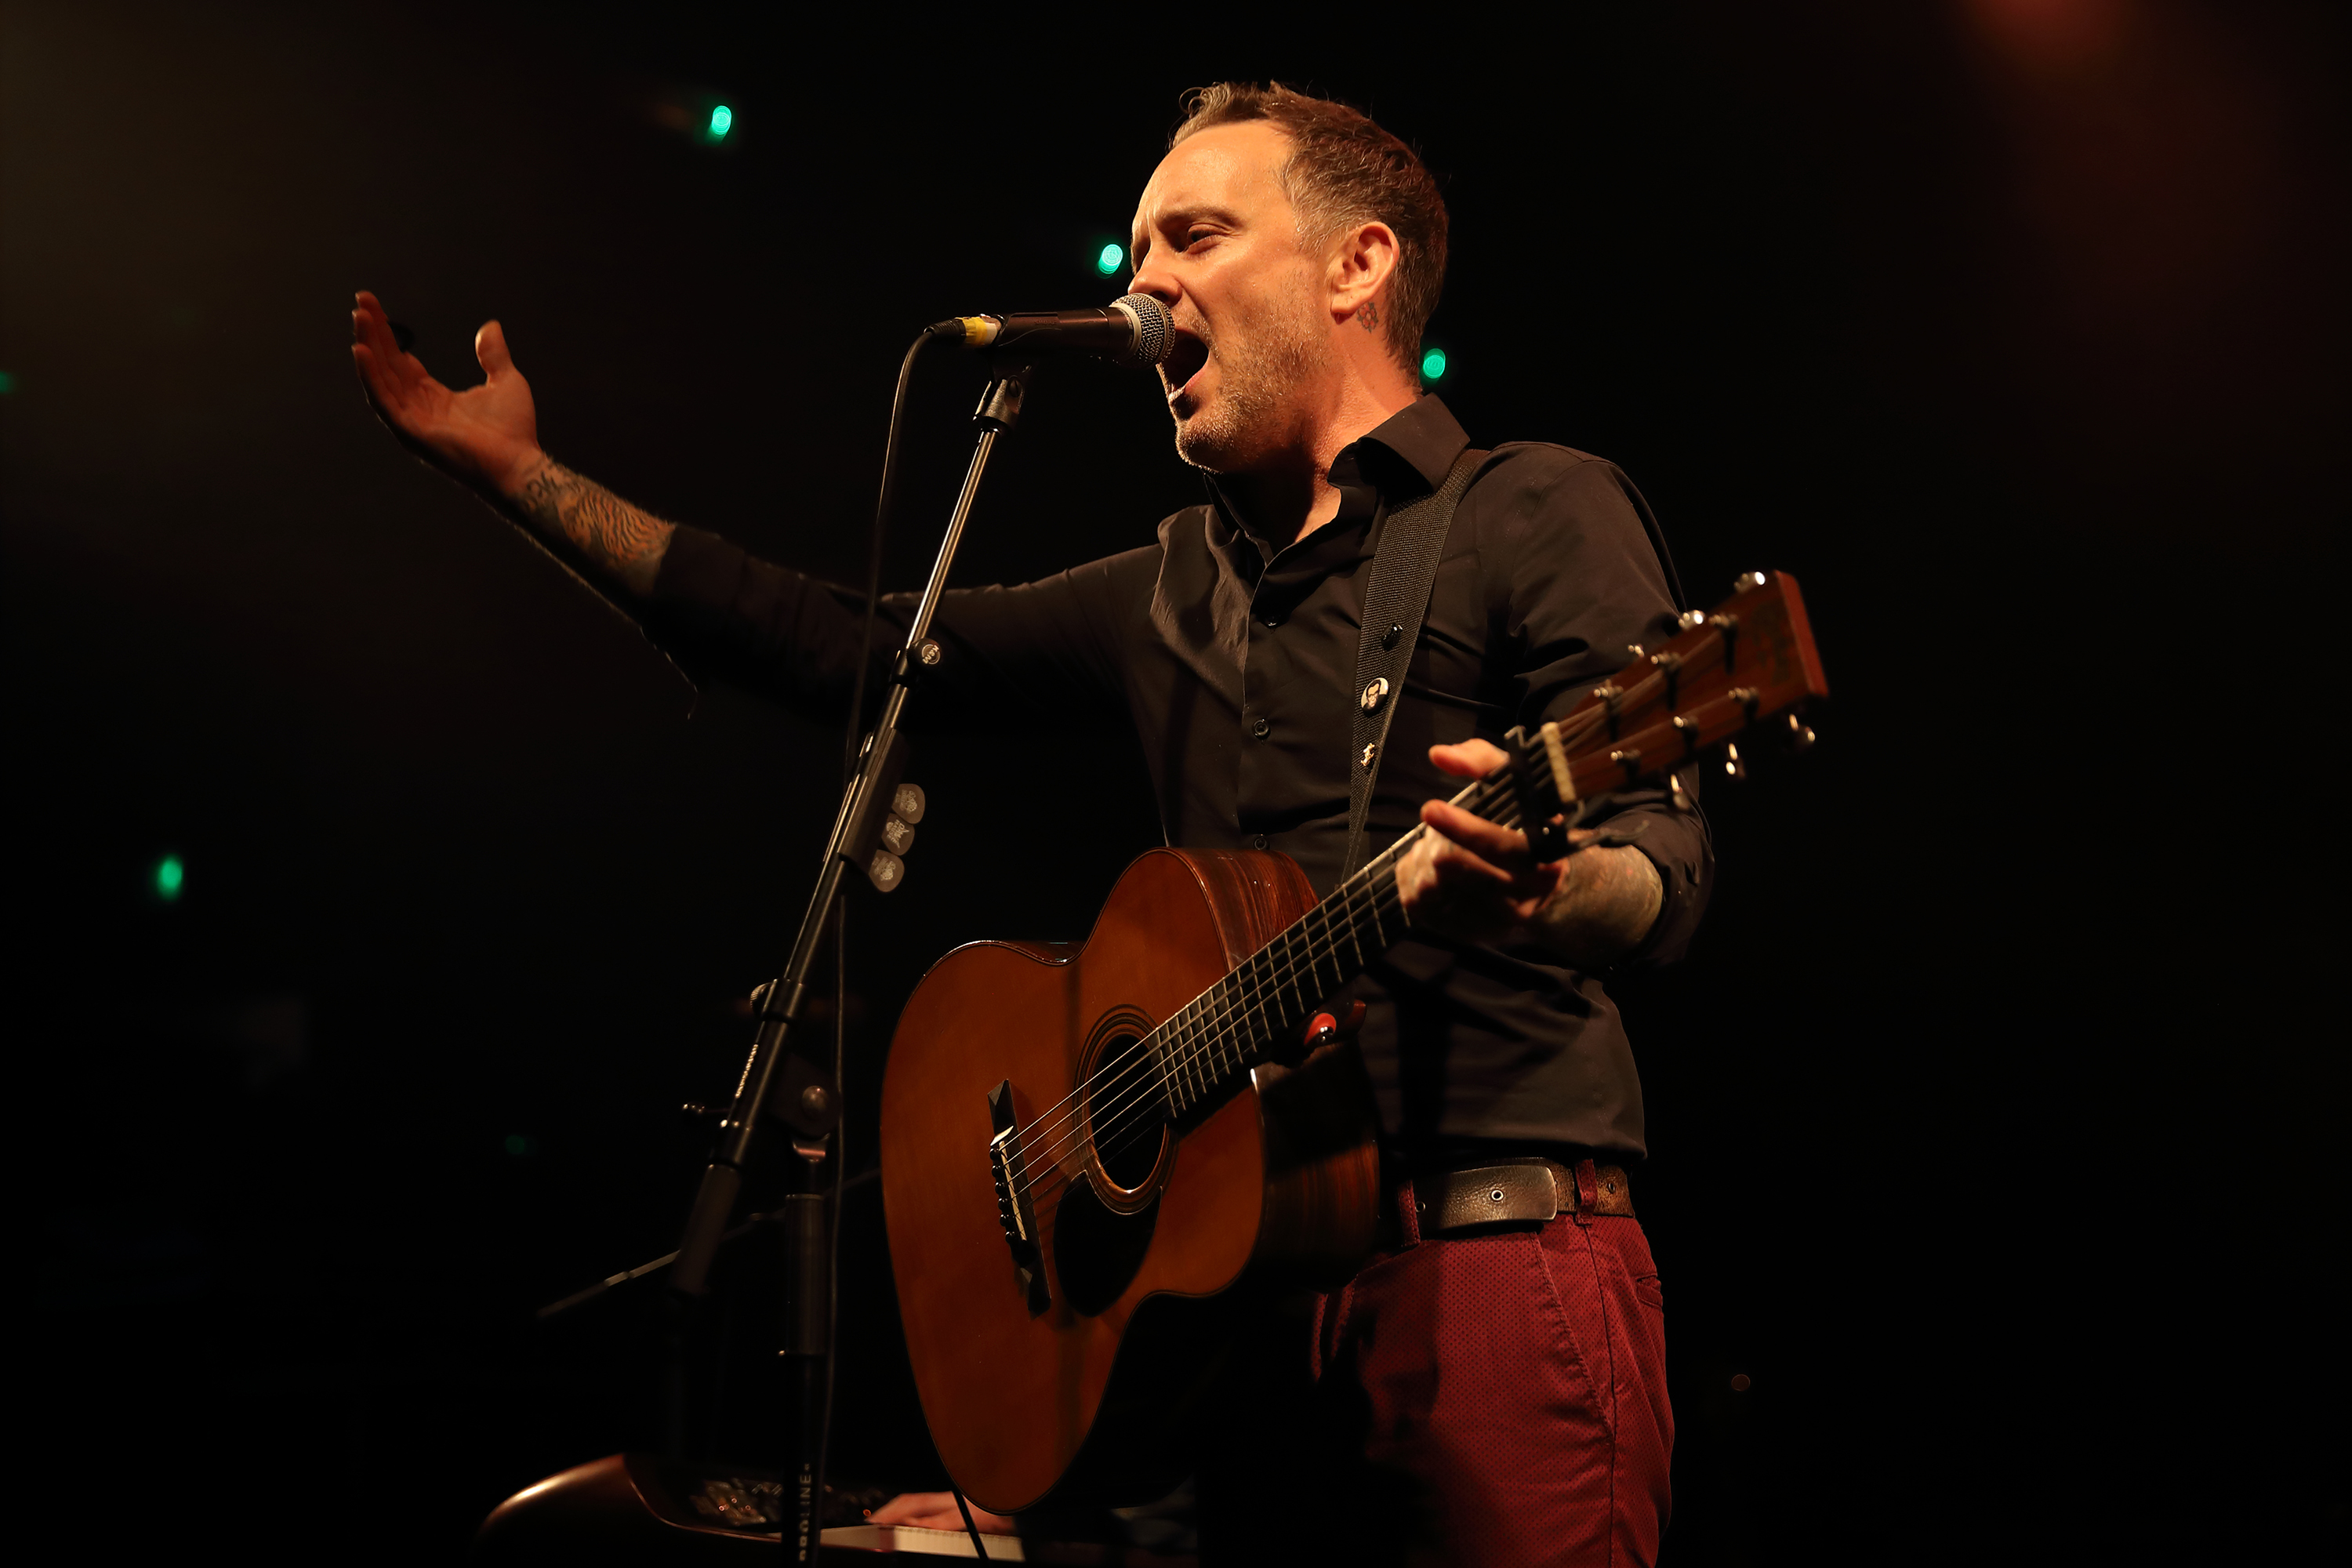 dave-hause-2020